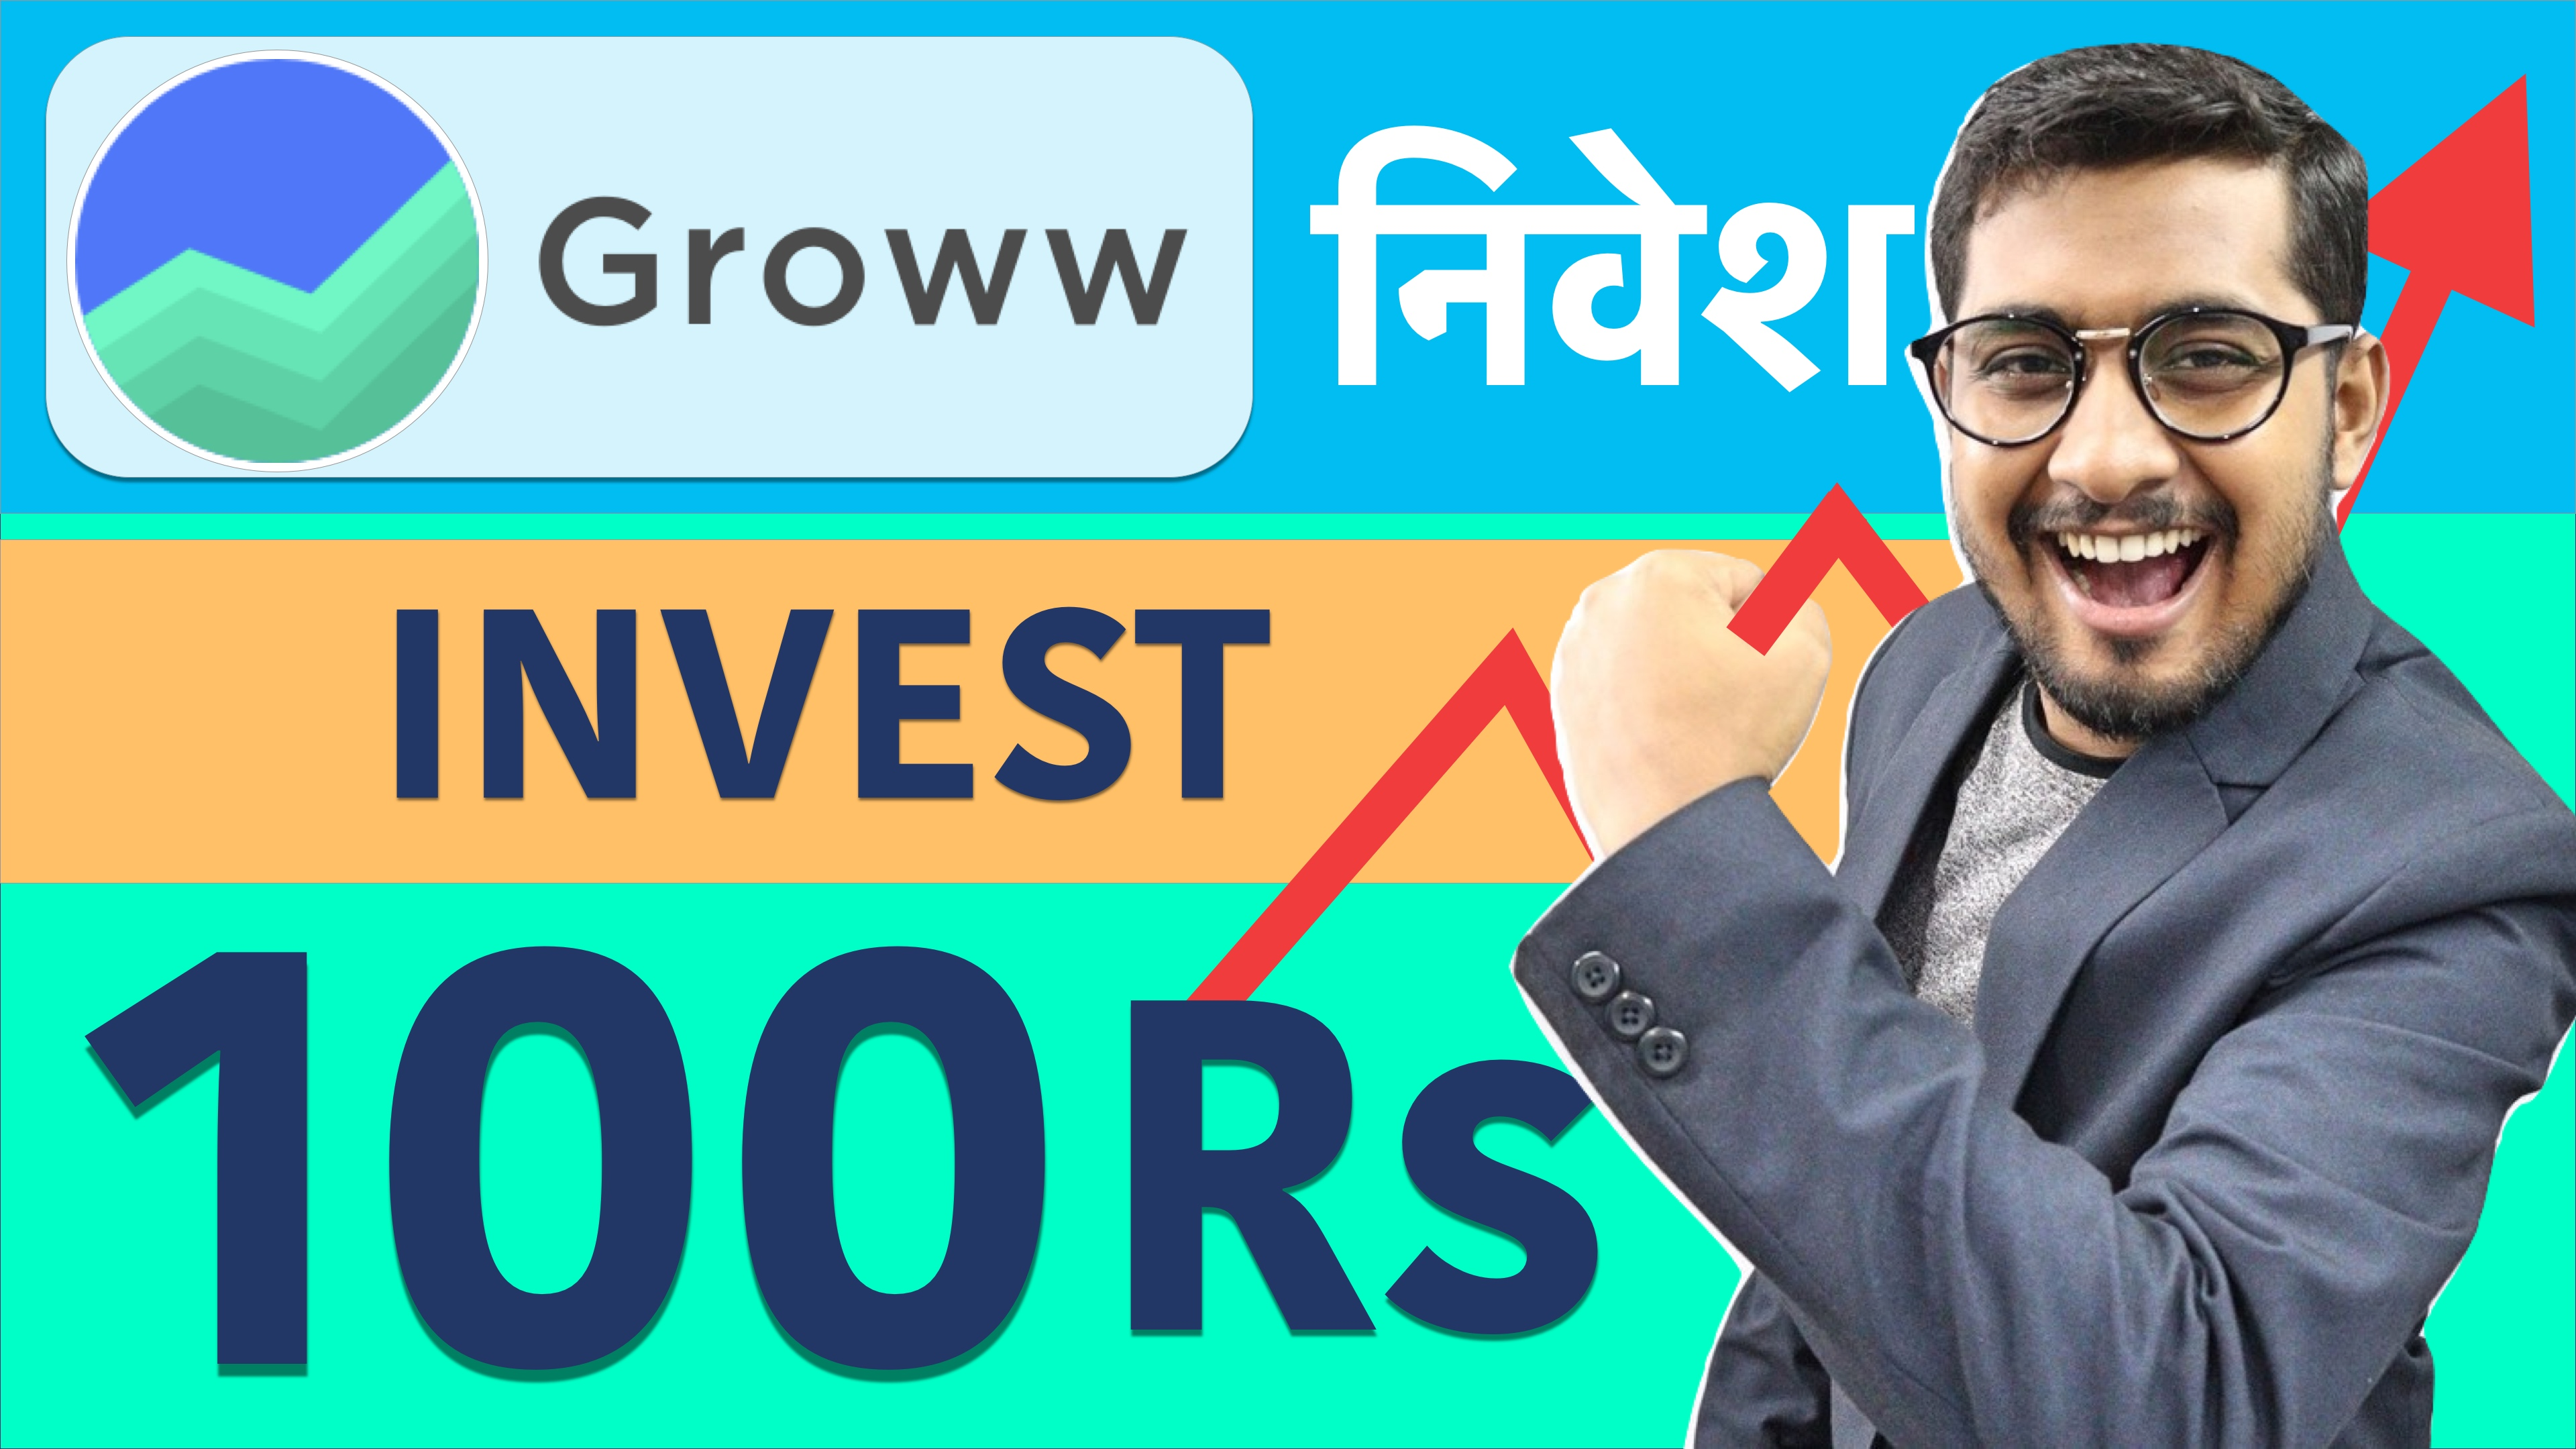 How to Invest 100 rupees in Mutual Fund Through Groww App | Invest 100 rupees and Earn High